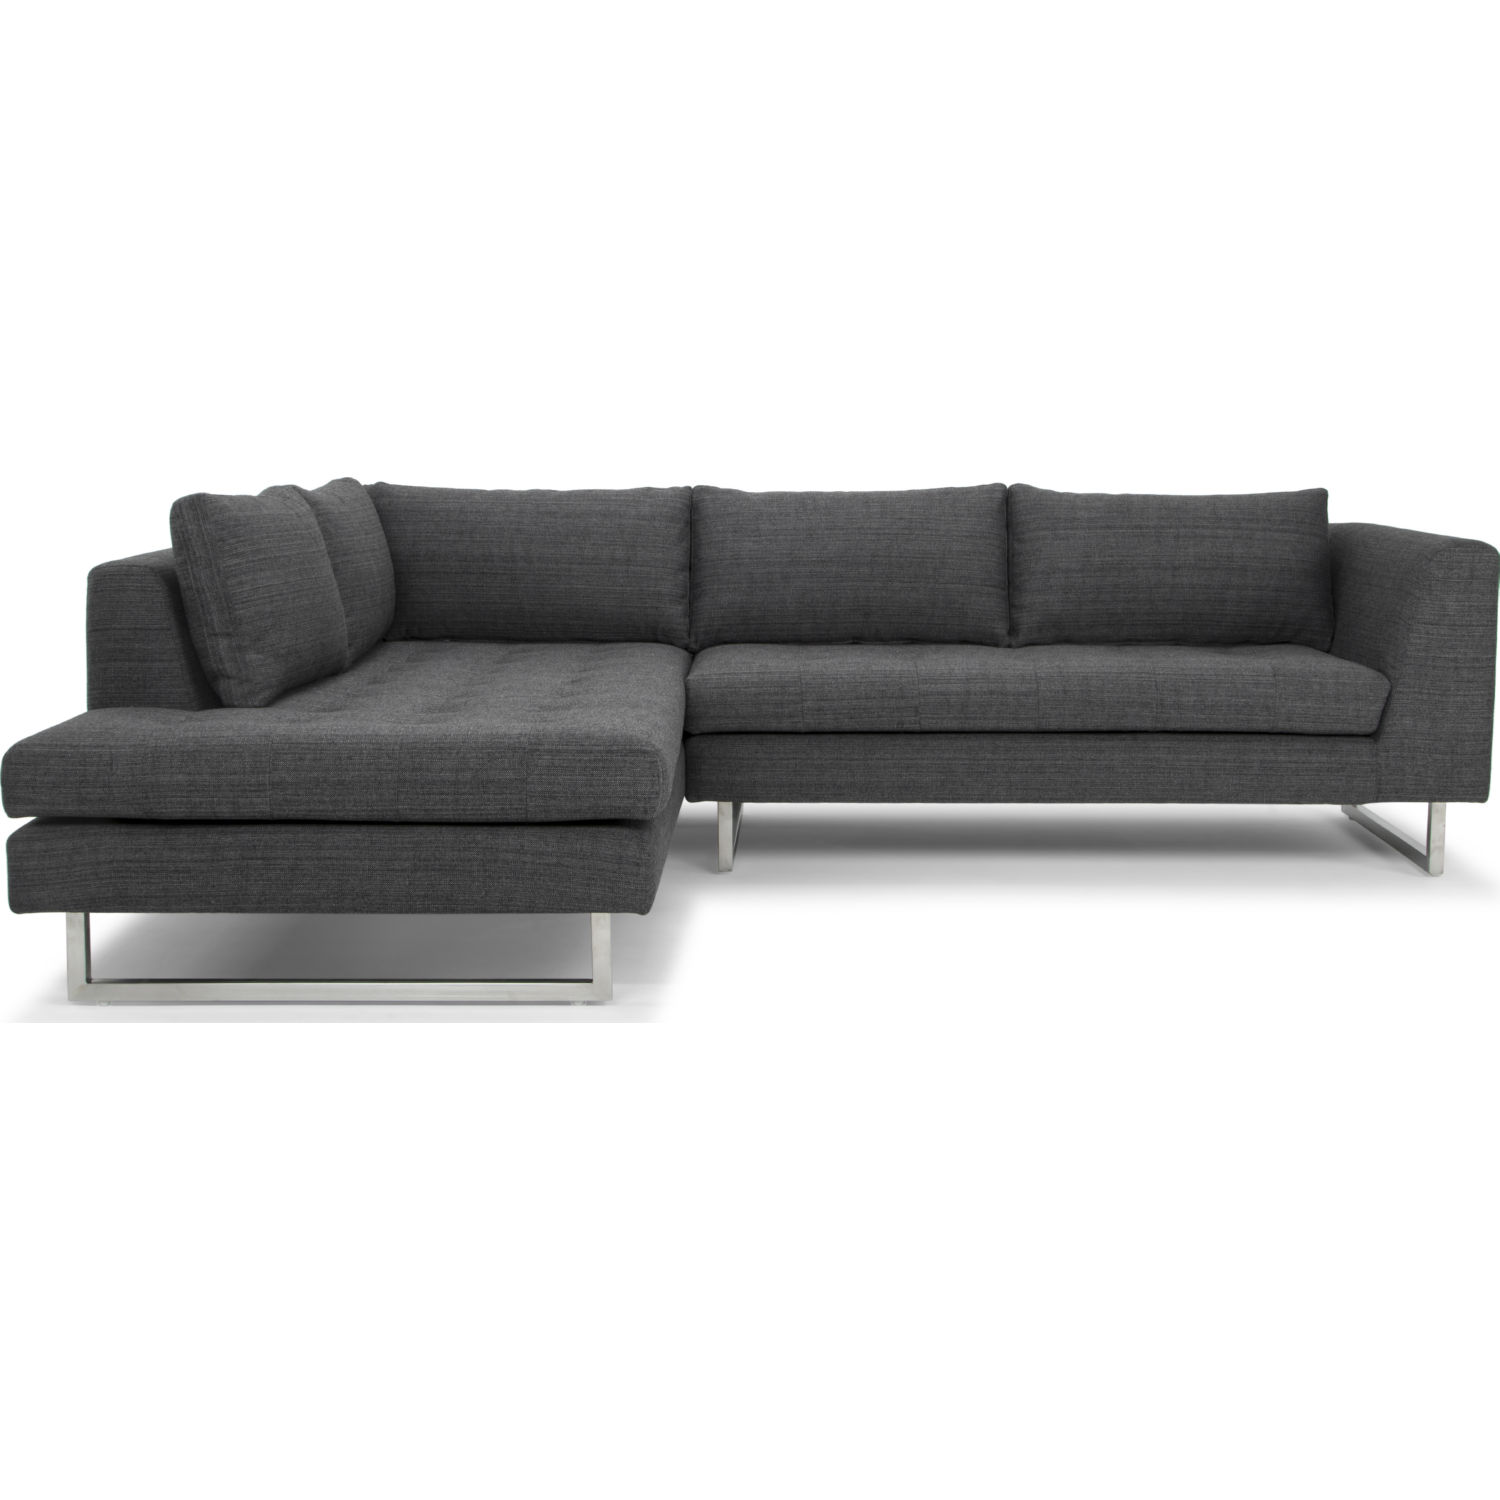 Incredible Janis Sectional Sofa W Left Hand Chaise In Dark Grey Tweed Fabric By Nuevo Modern Furniture Gamerscity Chair Design For Home Gamerscityorg